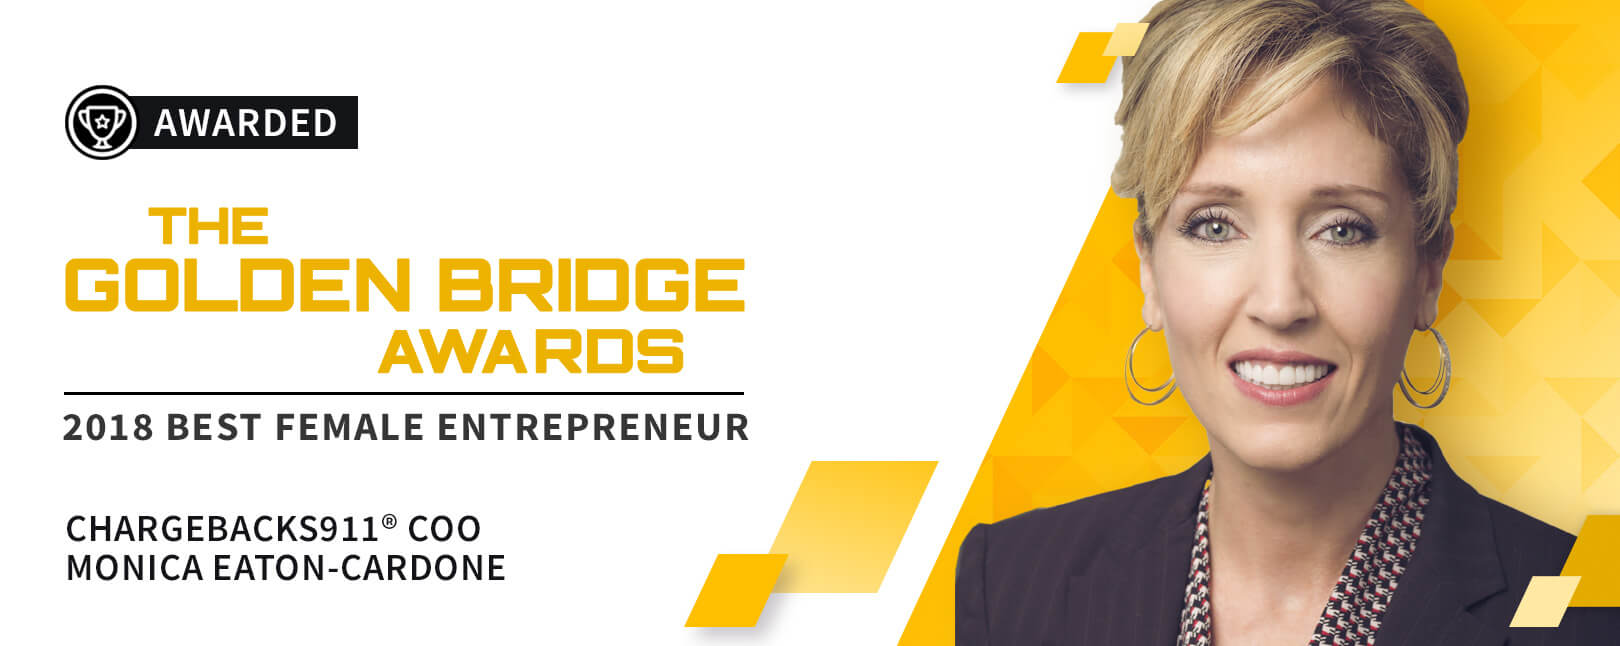 Best Female Entrepreneur - Golden Bridge Awards 2018